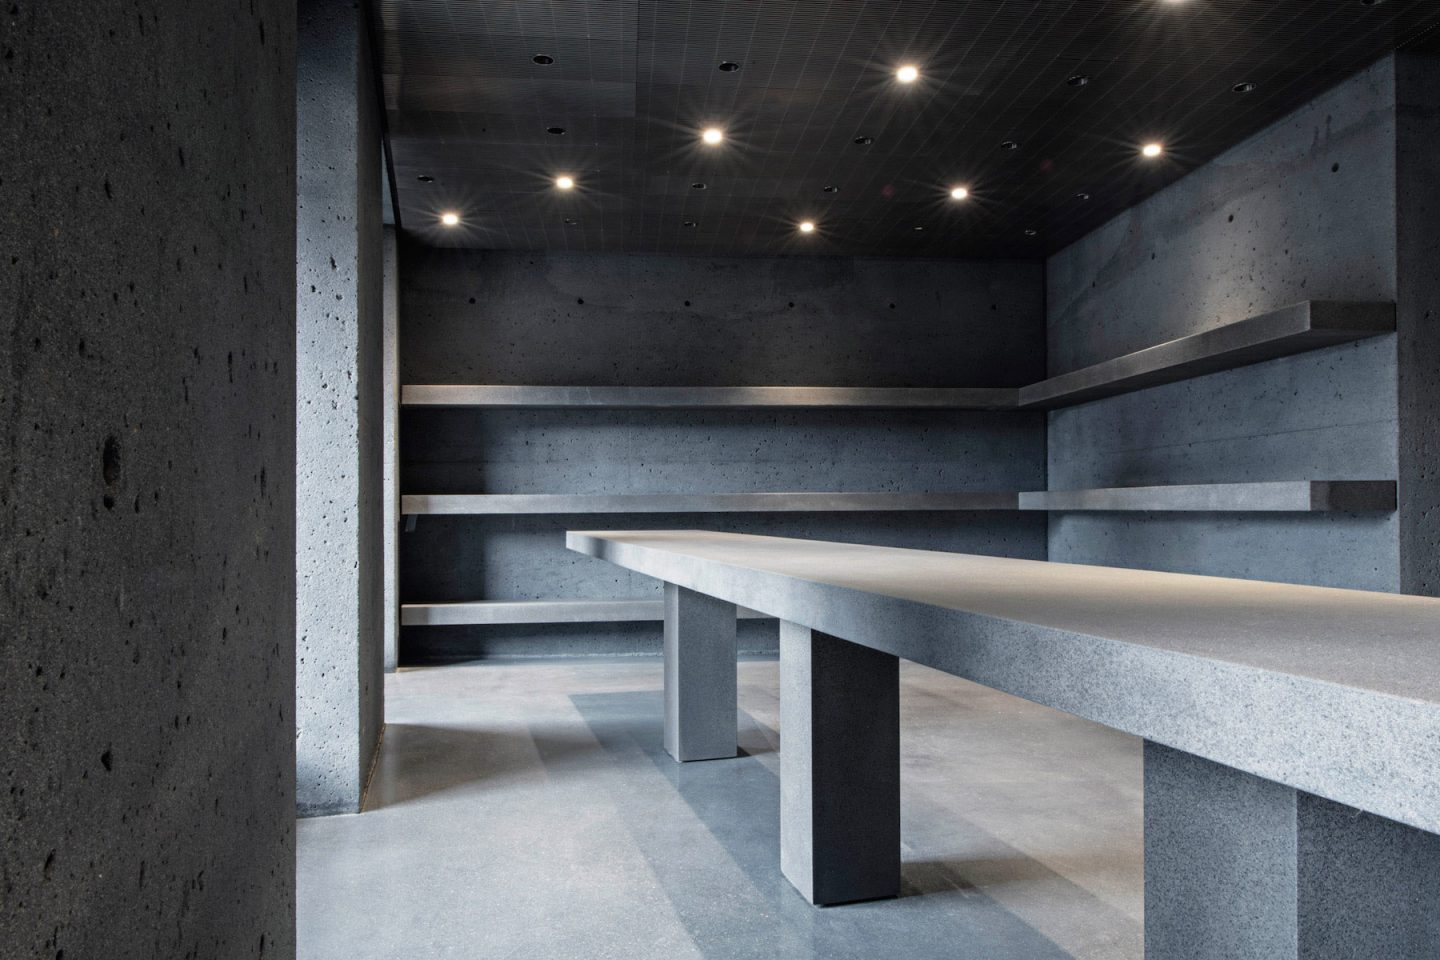 Berlin Interior Design David Chipperfield Designs Ssense's Flagship Store - Ignant